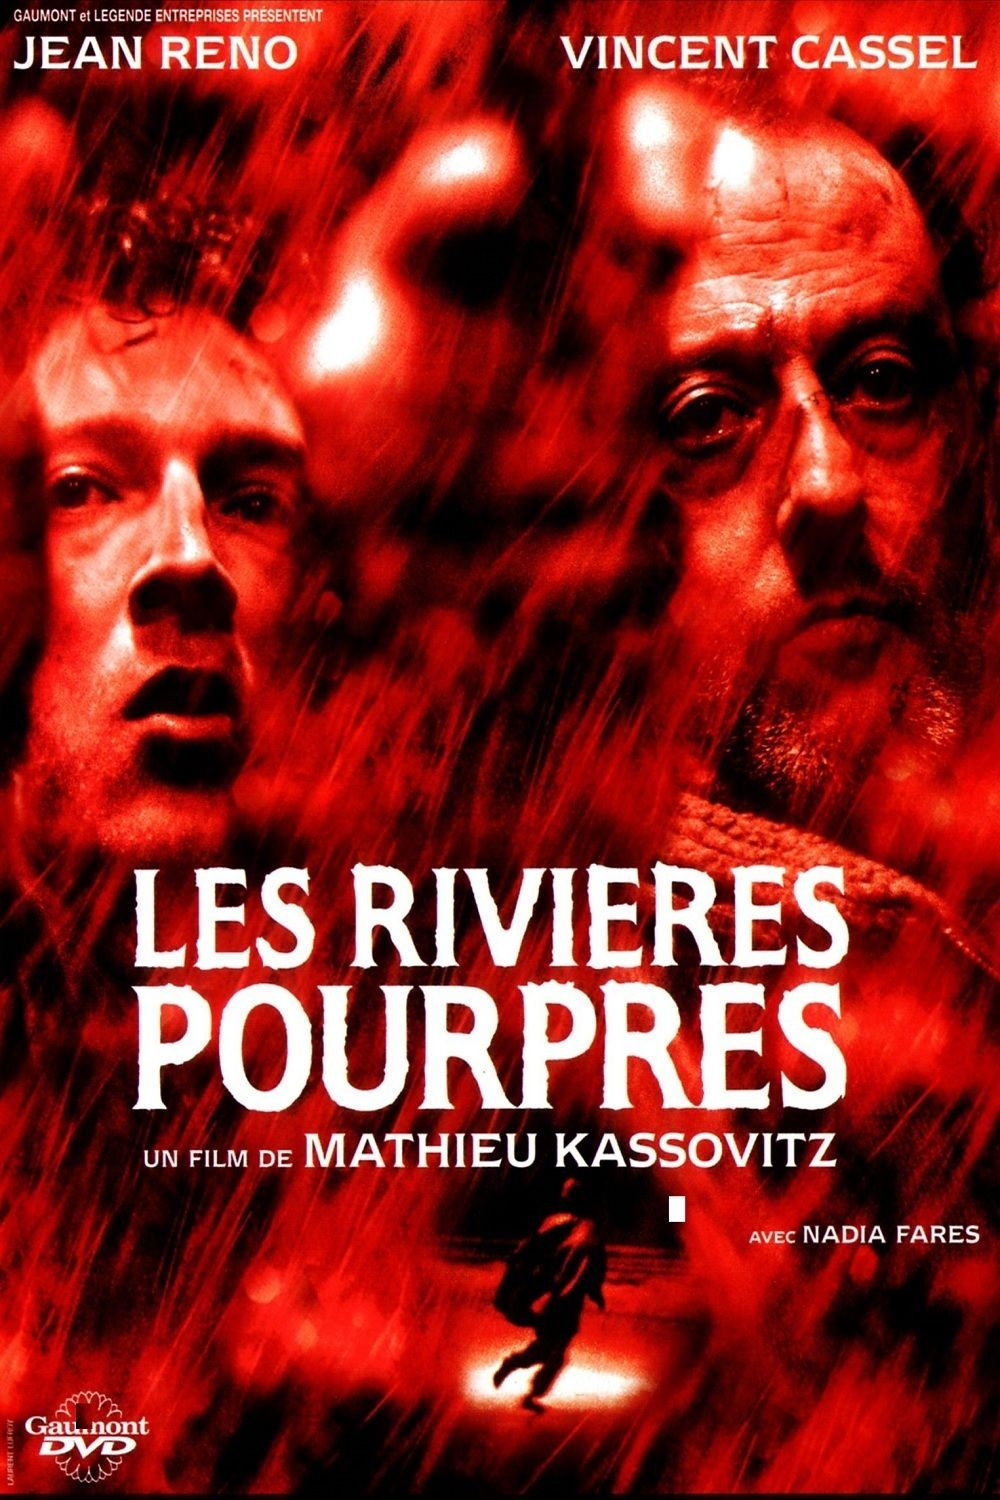 Filme Skinhead with regard to les rivières pourpres - film (2000) - senscritique